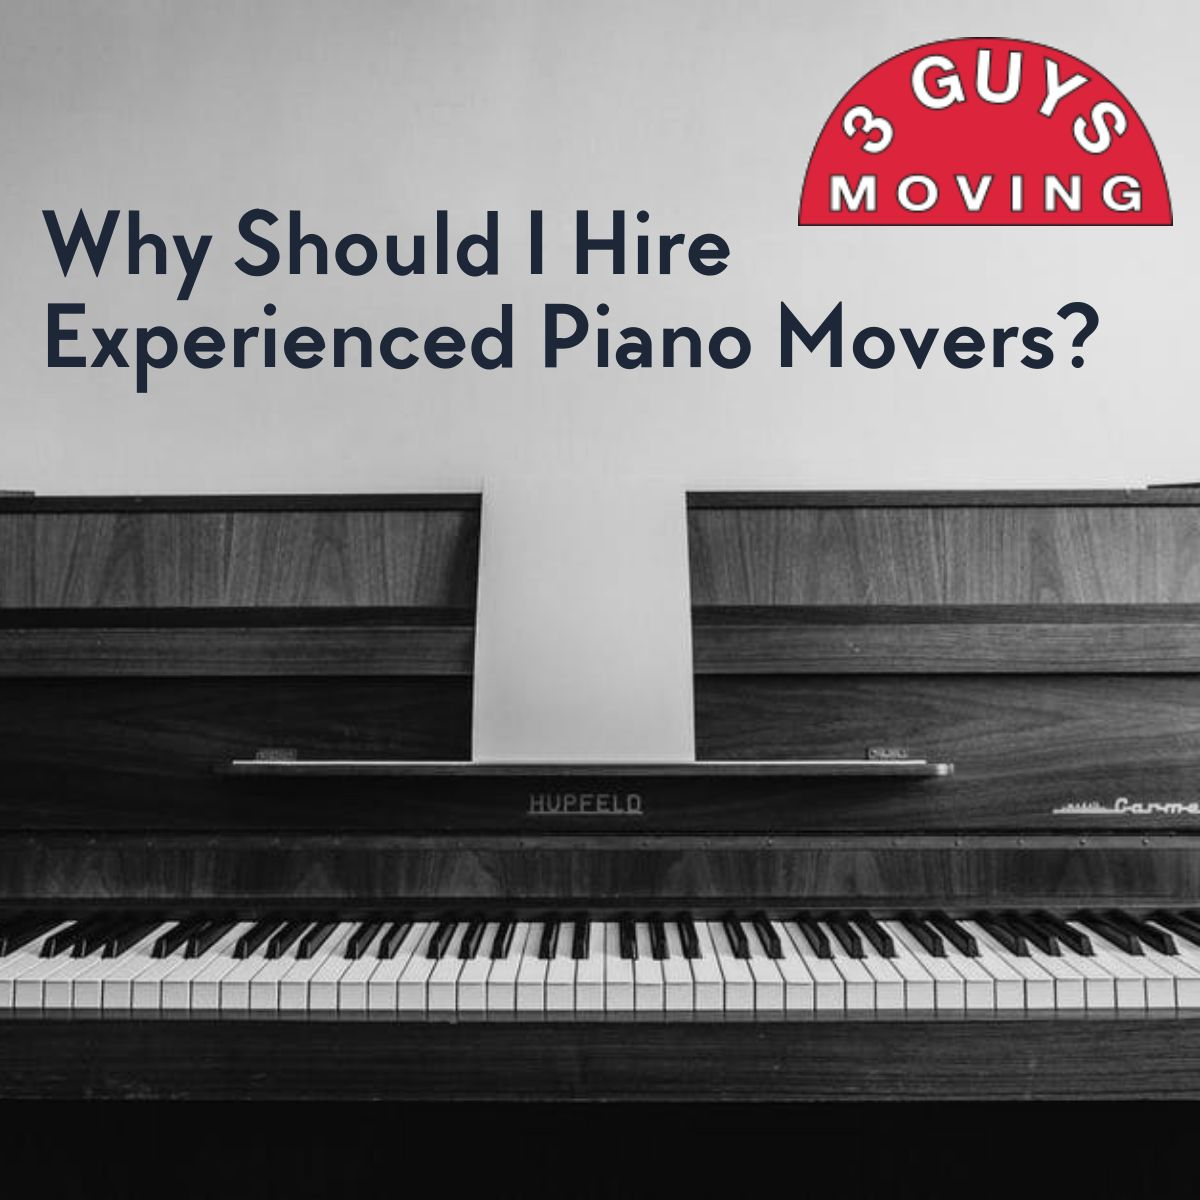 Piano Movers - Why Should I Hire Experienced Piano Movers?